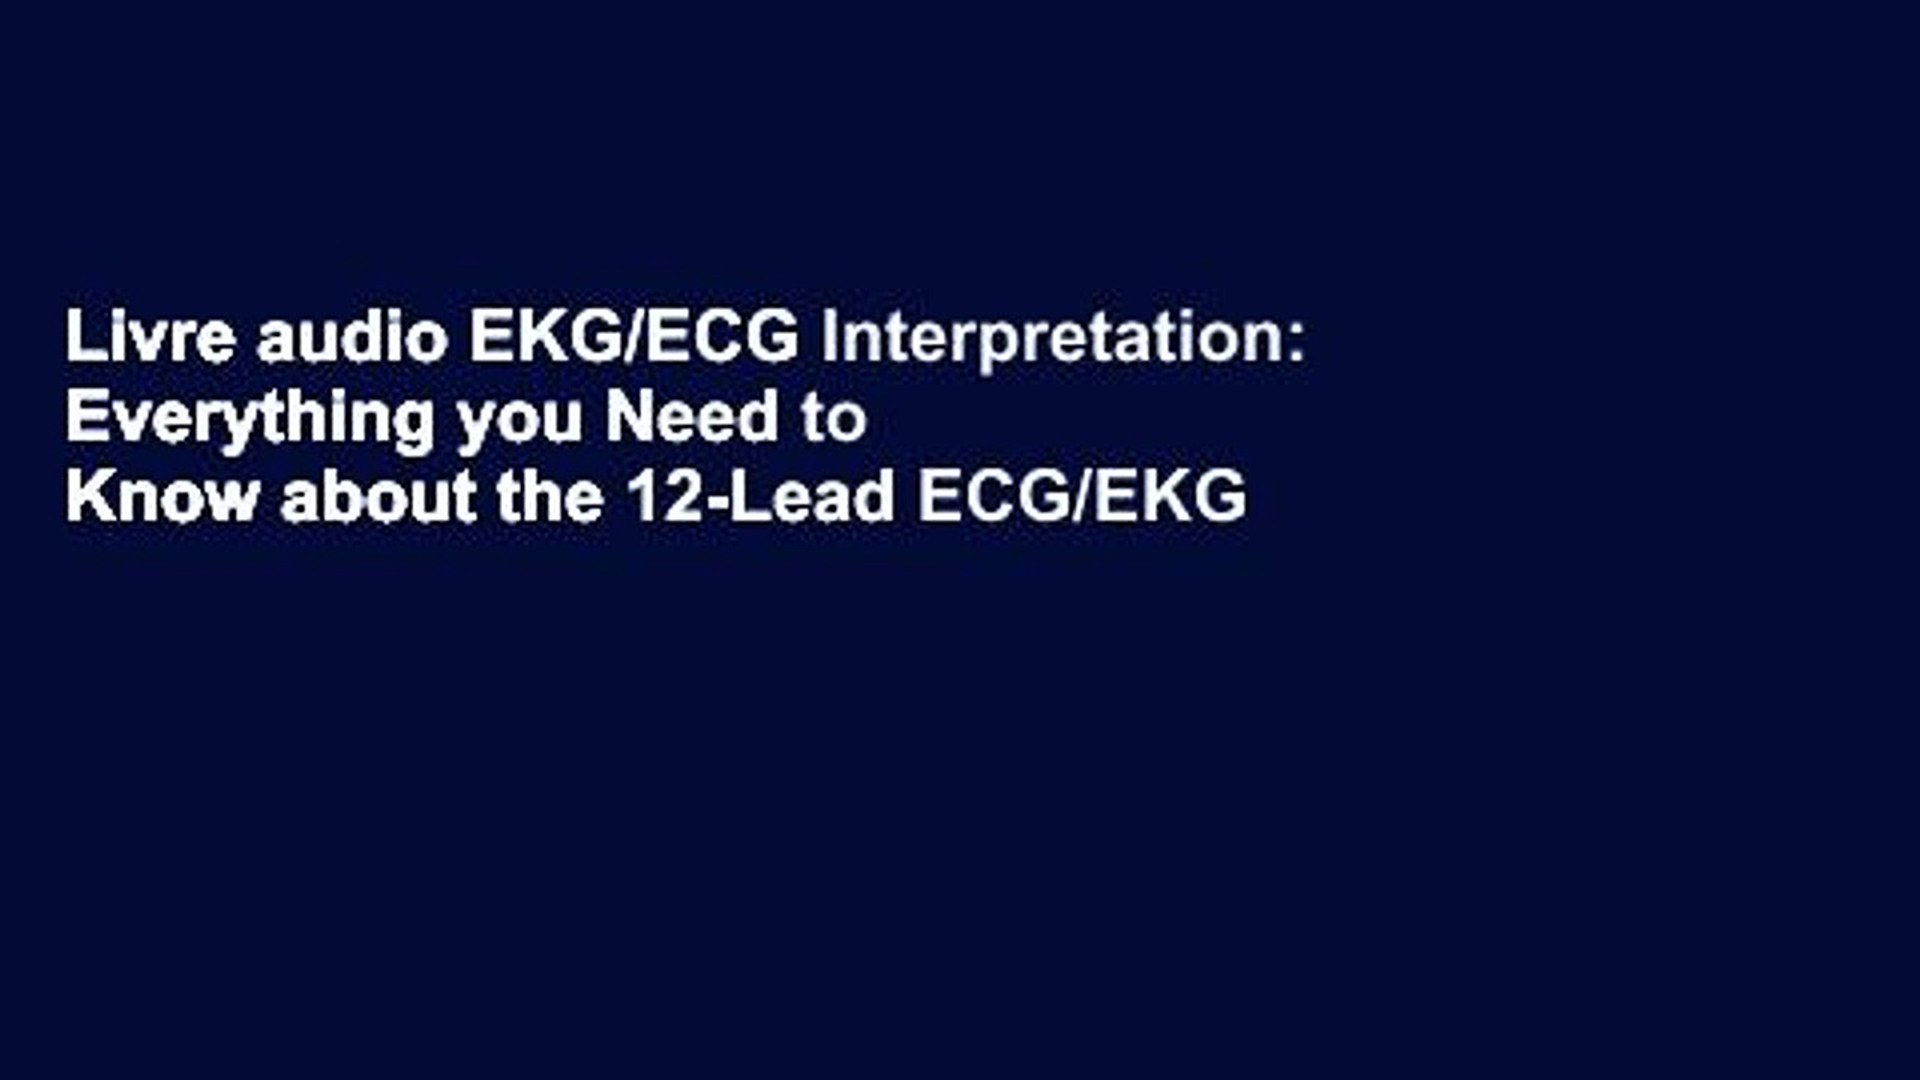 Livre Audio Ekg Ecg Interpretation Everything You Need To Know About The 12 Lead Ecg Ekg